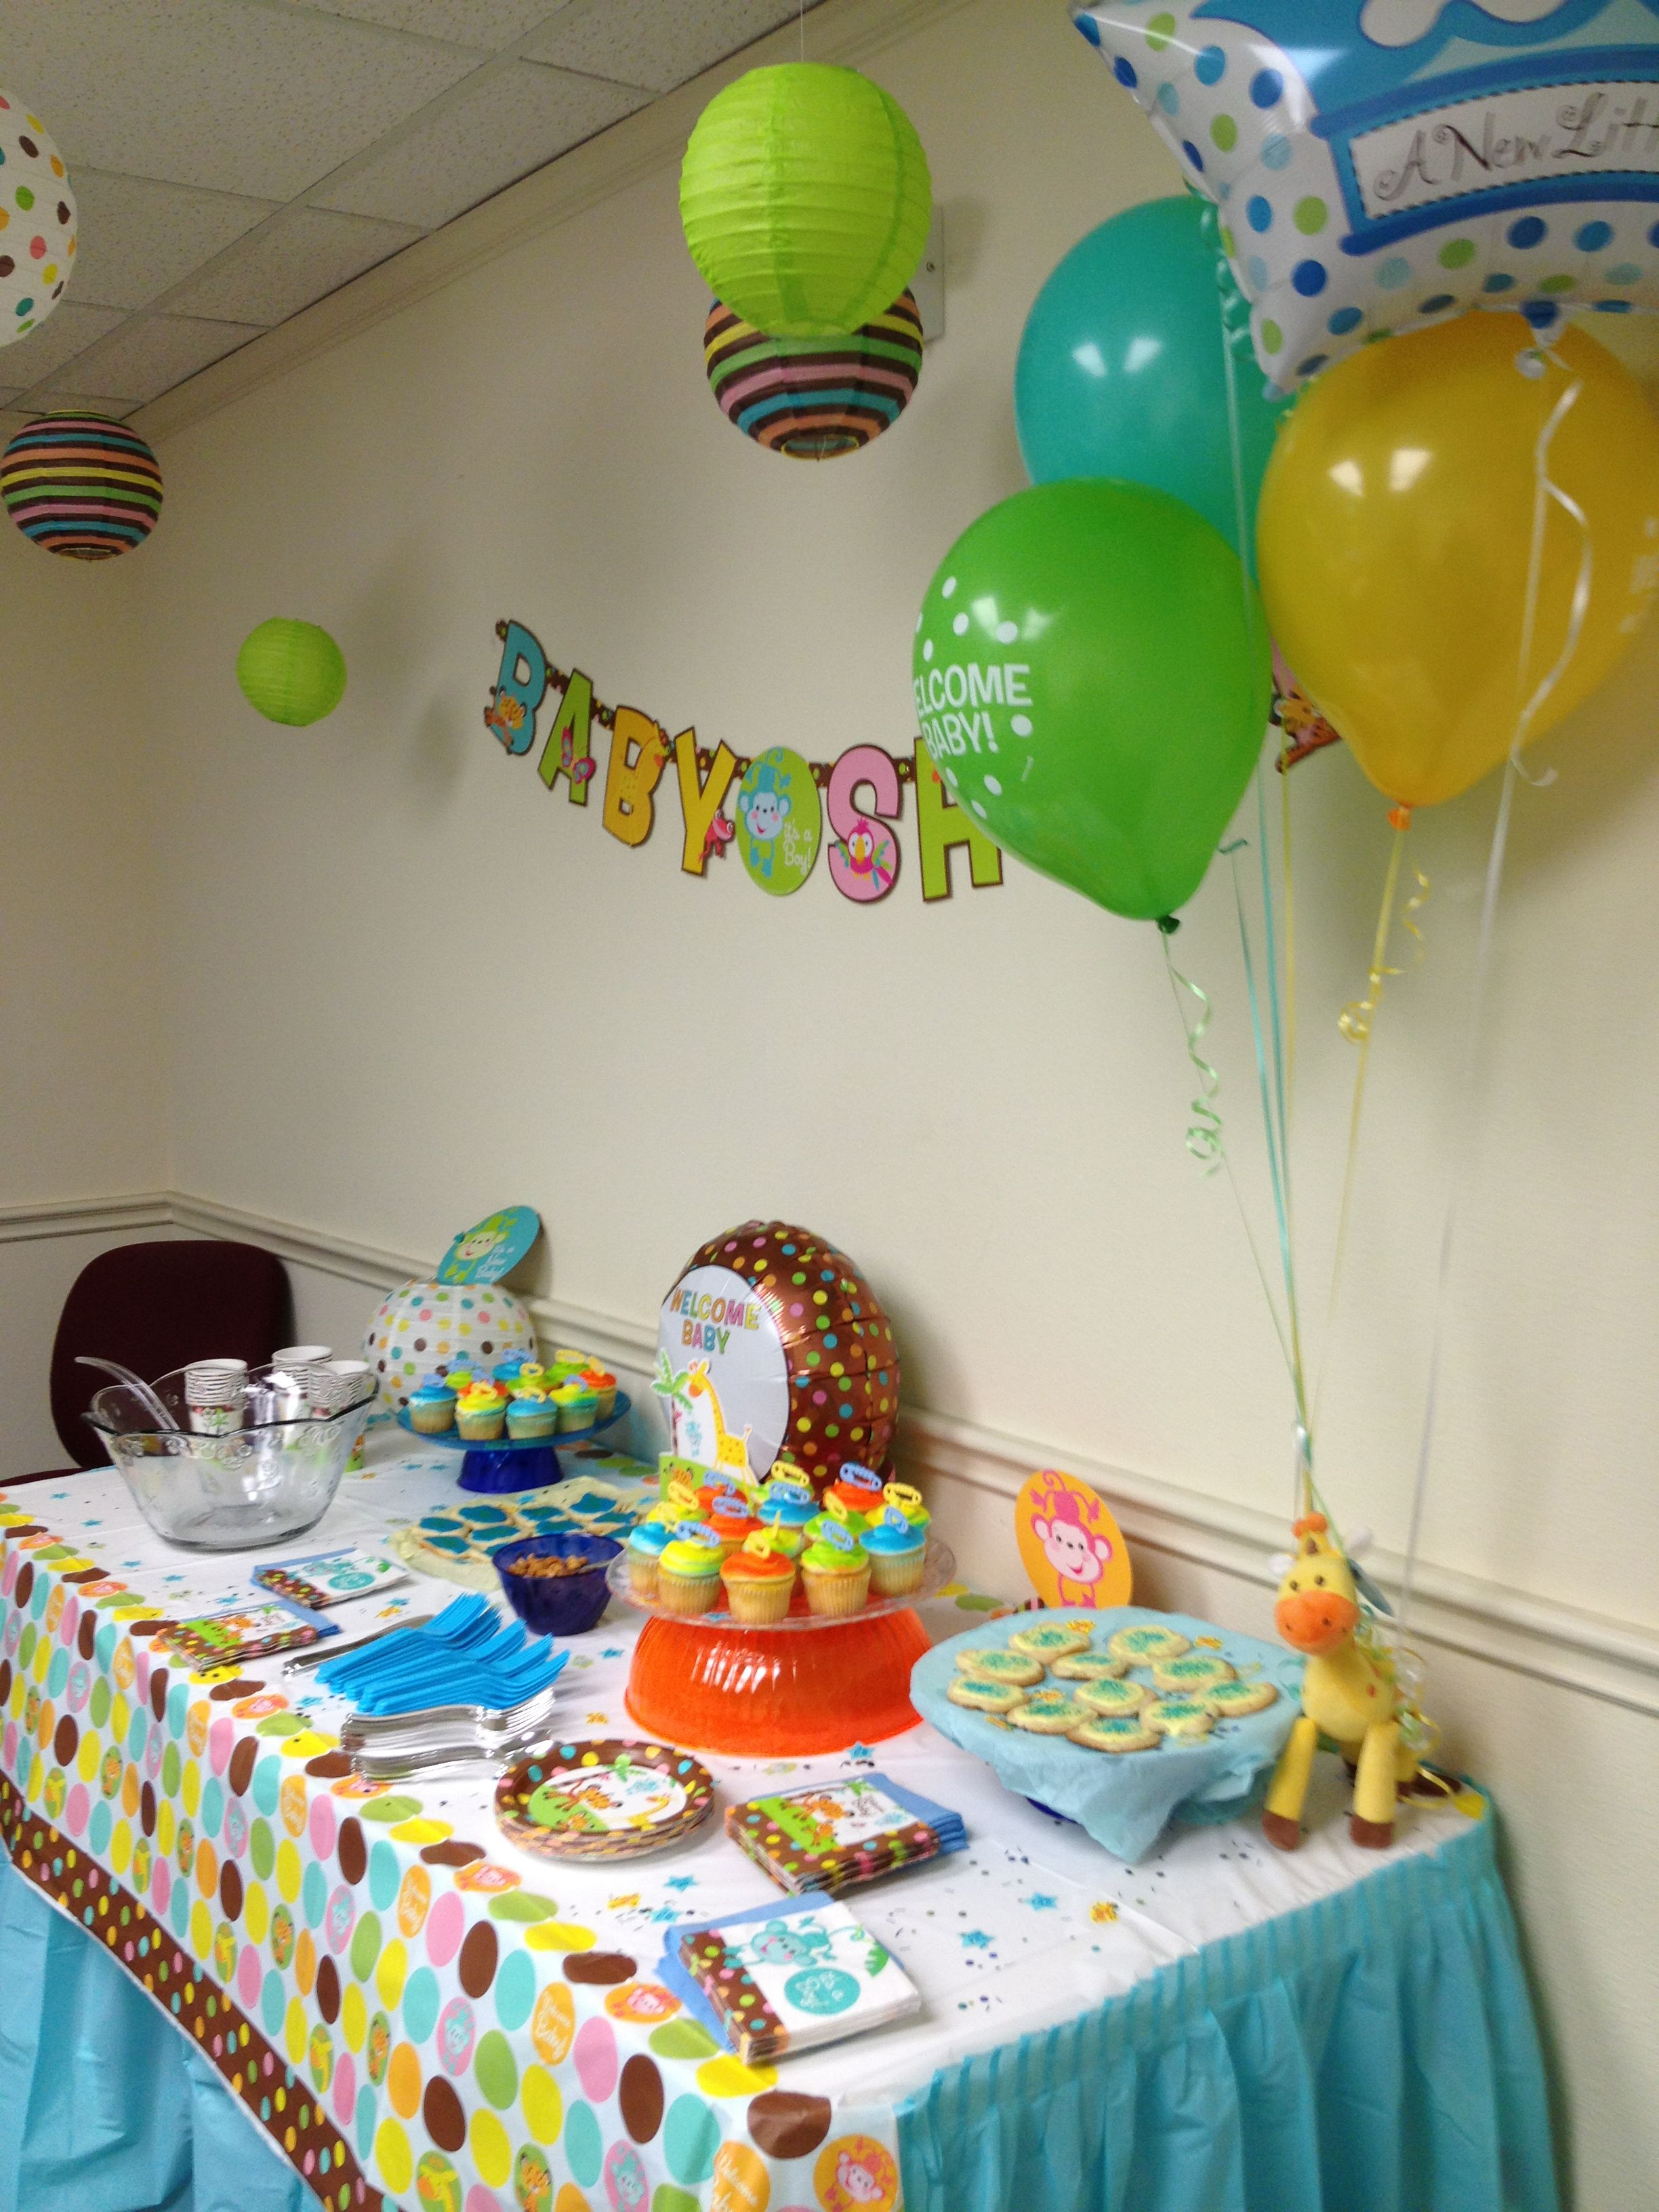 Marvelous Fisher Price Baby Shower   A Stylish Celebration For A New Arrival!